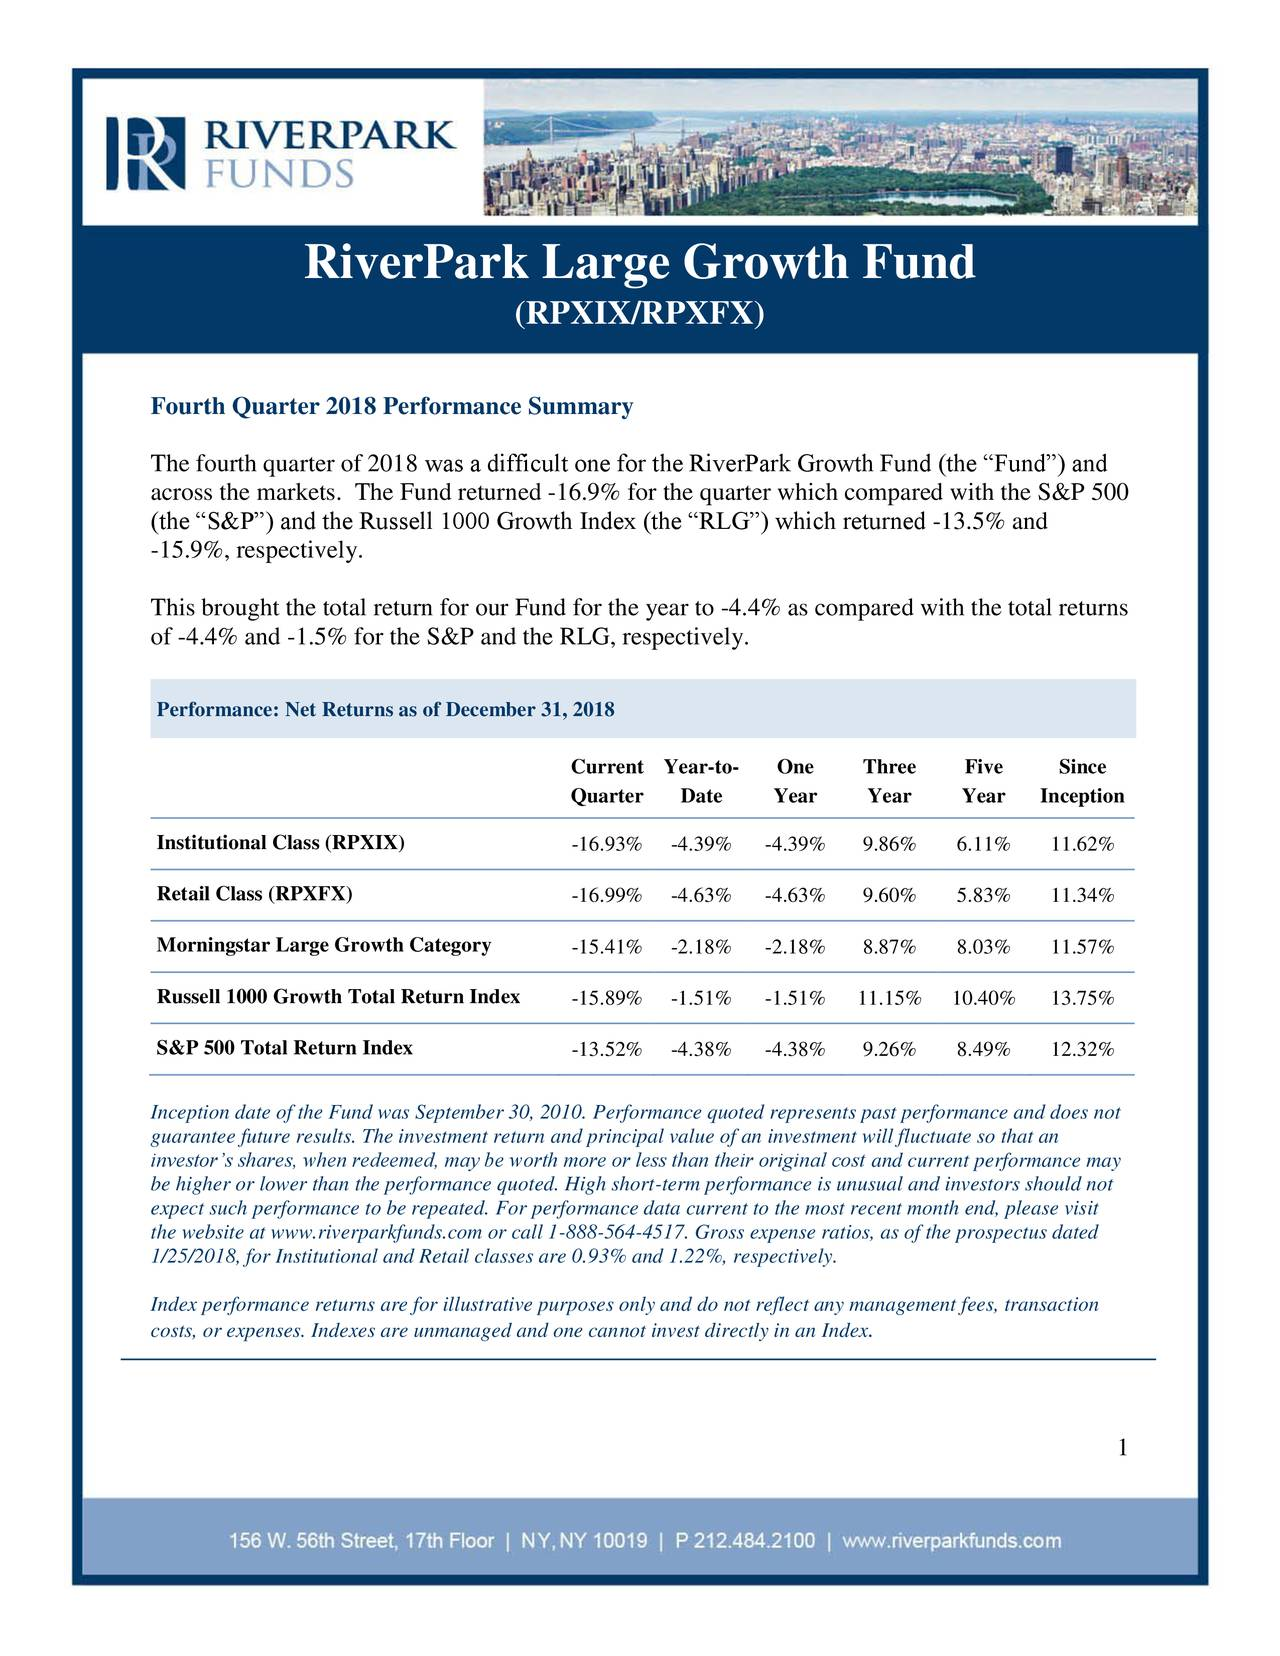 "(RPXIX/RPXFX) Fourth Quarter 2018 Performance Summary The fourth quarter of 2018 was a difficult one for the RiverPark Growth Fund (the ""Fund"") and across the markets. The Fund returned -16.9% for the quarter which compared with the S&P 500 (the ""S&P"") and the Russell 1000 Growth Index (the ""RLG"") which returned -13.5% and -15.9%, respectively. This brought the total return for our Fund for the year to -4.4% as compared with the total returns of -4.4% and -1.5% for the S&P and the RLG, respectively. Performance: Net Returns as of December 31, 2018 Current Year-to- One Three Five Since Quarter Date Year Year Year Inception Institutional Class (RPXIX) -16.93% -4.39% -4.39% 9.86% 6.11% 11.62% Retail Class (RPXFX) -16.99% -4.63% -4.63% 9.60% 5.83% 11.34% Morningstar Large Growth Category -15.41% -2.18% -2.18% 8.87% 8.03% 11.57% Russell 1000 Growth Total Return Index -15.89% -1.51% -1.51% 11.15% 10.40% 13.75% S&P 500 Total Return Index -13.52% -4.38% -4.38% 9.26% 8.49% 12.32% Inception date of the Fund was September 30, 2010. Performance quoted represents past performance and does not guarantee future results. The investment return and principal value of an investment will fluctuate so that an investor's shares, when redeemed, may be worth more or less than their original cost and current performance may be higher or lower than the performance quoted. High short-term performance is unusual and investors should not expect such performance to be repeated. For performance data current to the most recent month end, please visit the website at www.riverparkfunds.com or call 1-888-564-4517. Gross expense ratios, as of the prospectus dated 1/25/2018, for Institutional and Retail classes are 0.93% and 1.22%, respectively. Index performance returns are for illustrative purposes only and do not reflect any management fees, transaction costs, or expenses. Indexes are unmanaged and one cannot invest directly.in an Index 1"